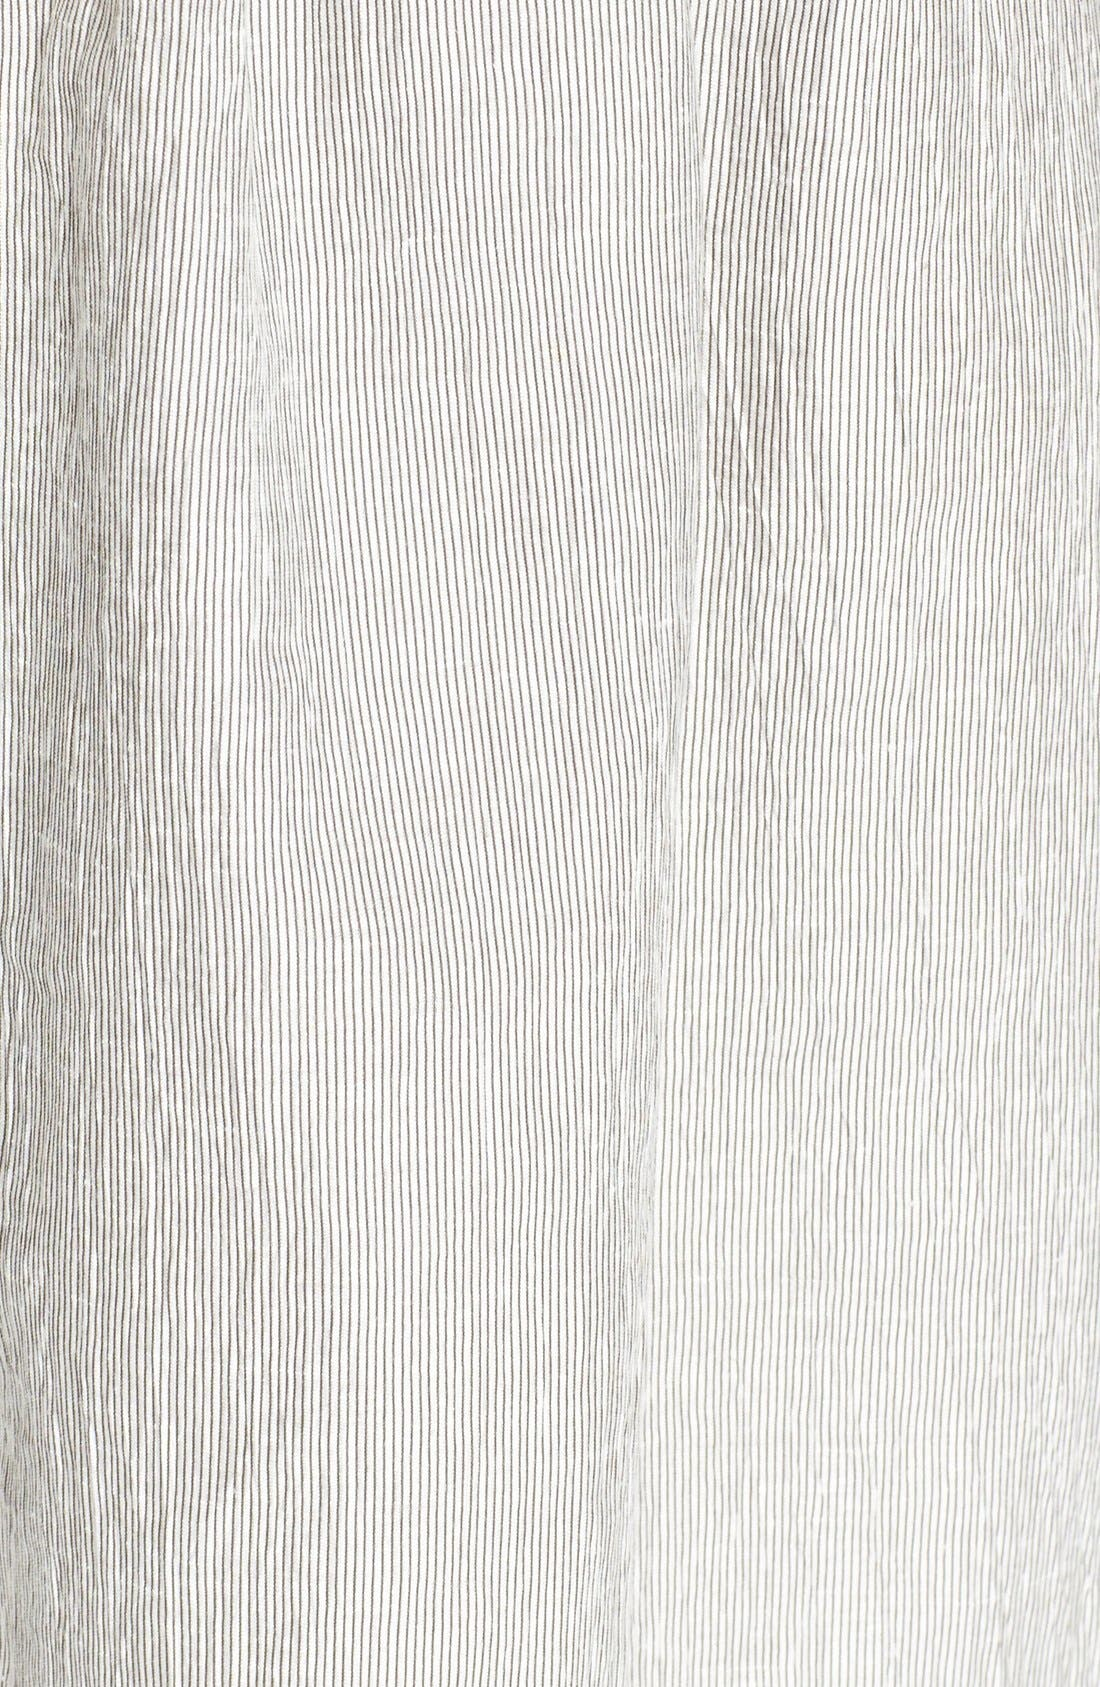 Alternate Image 3  - rag & bone 'Svea' Linen Blend Full Skirt